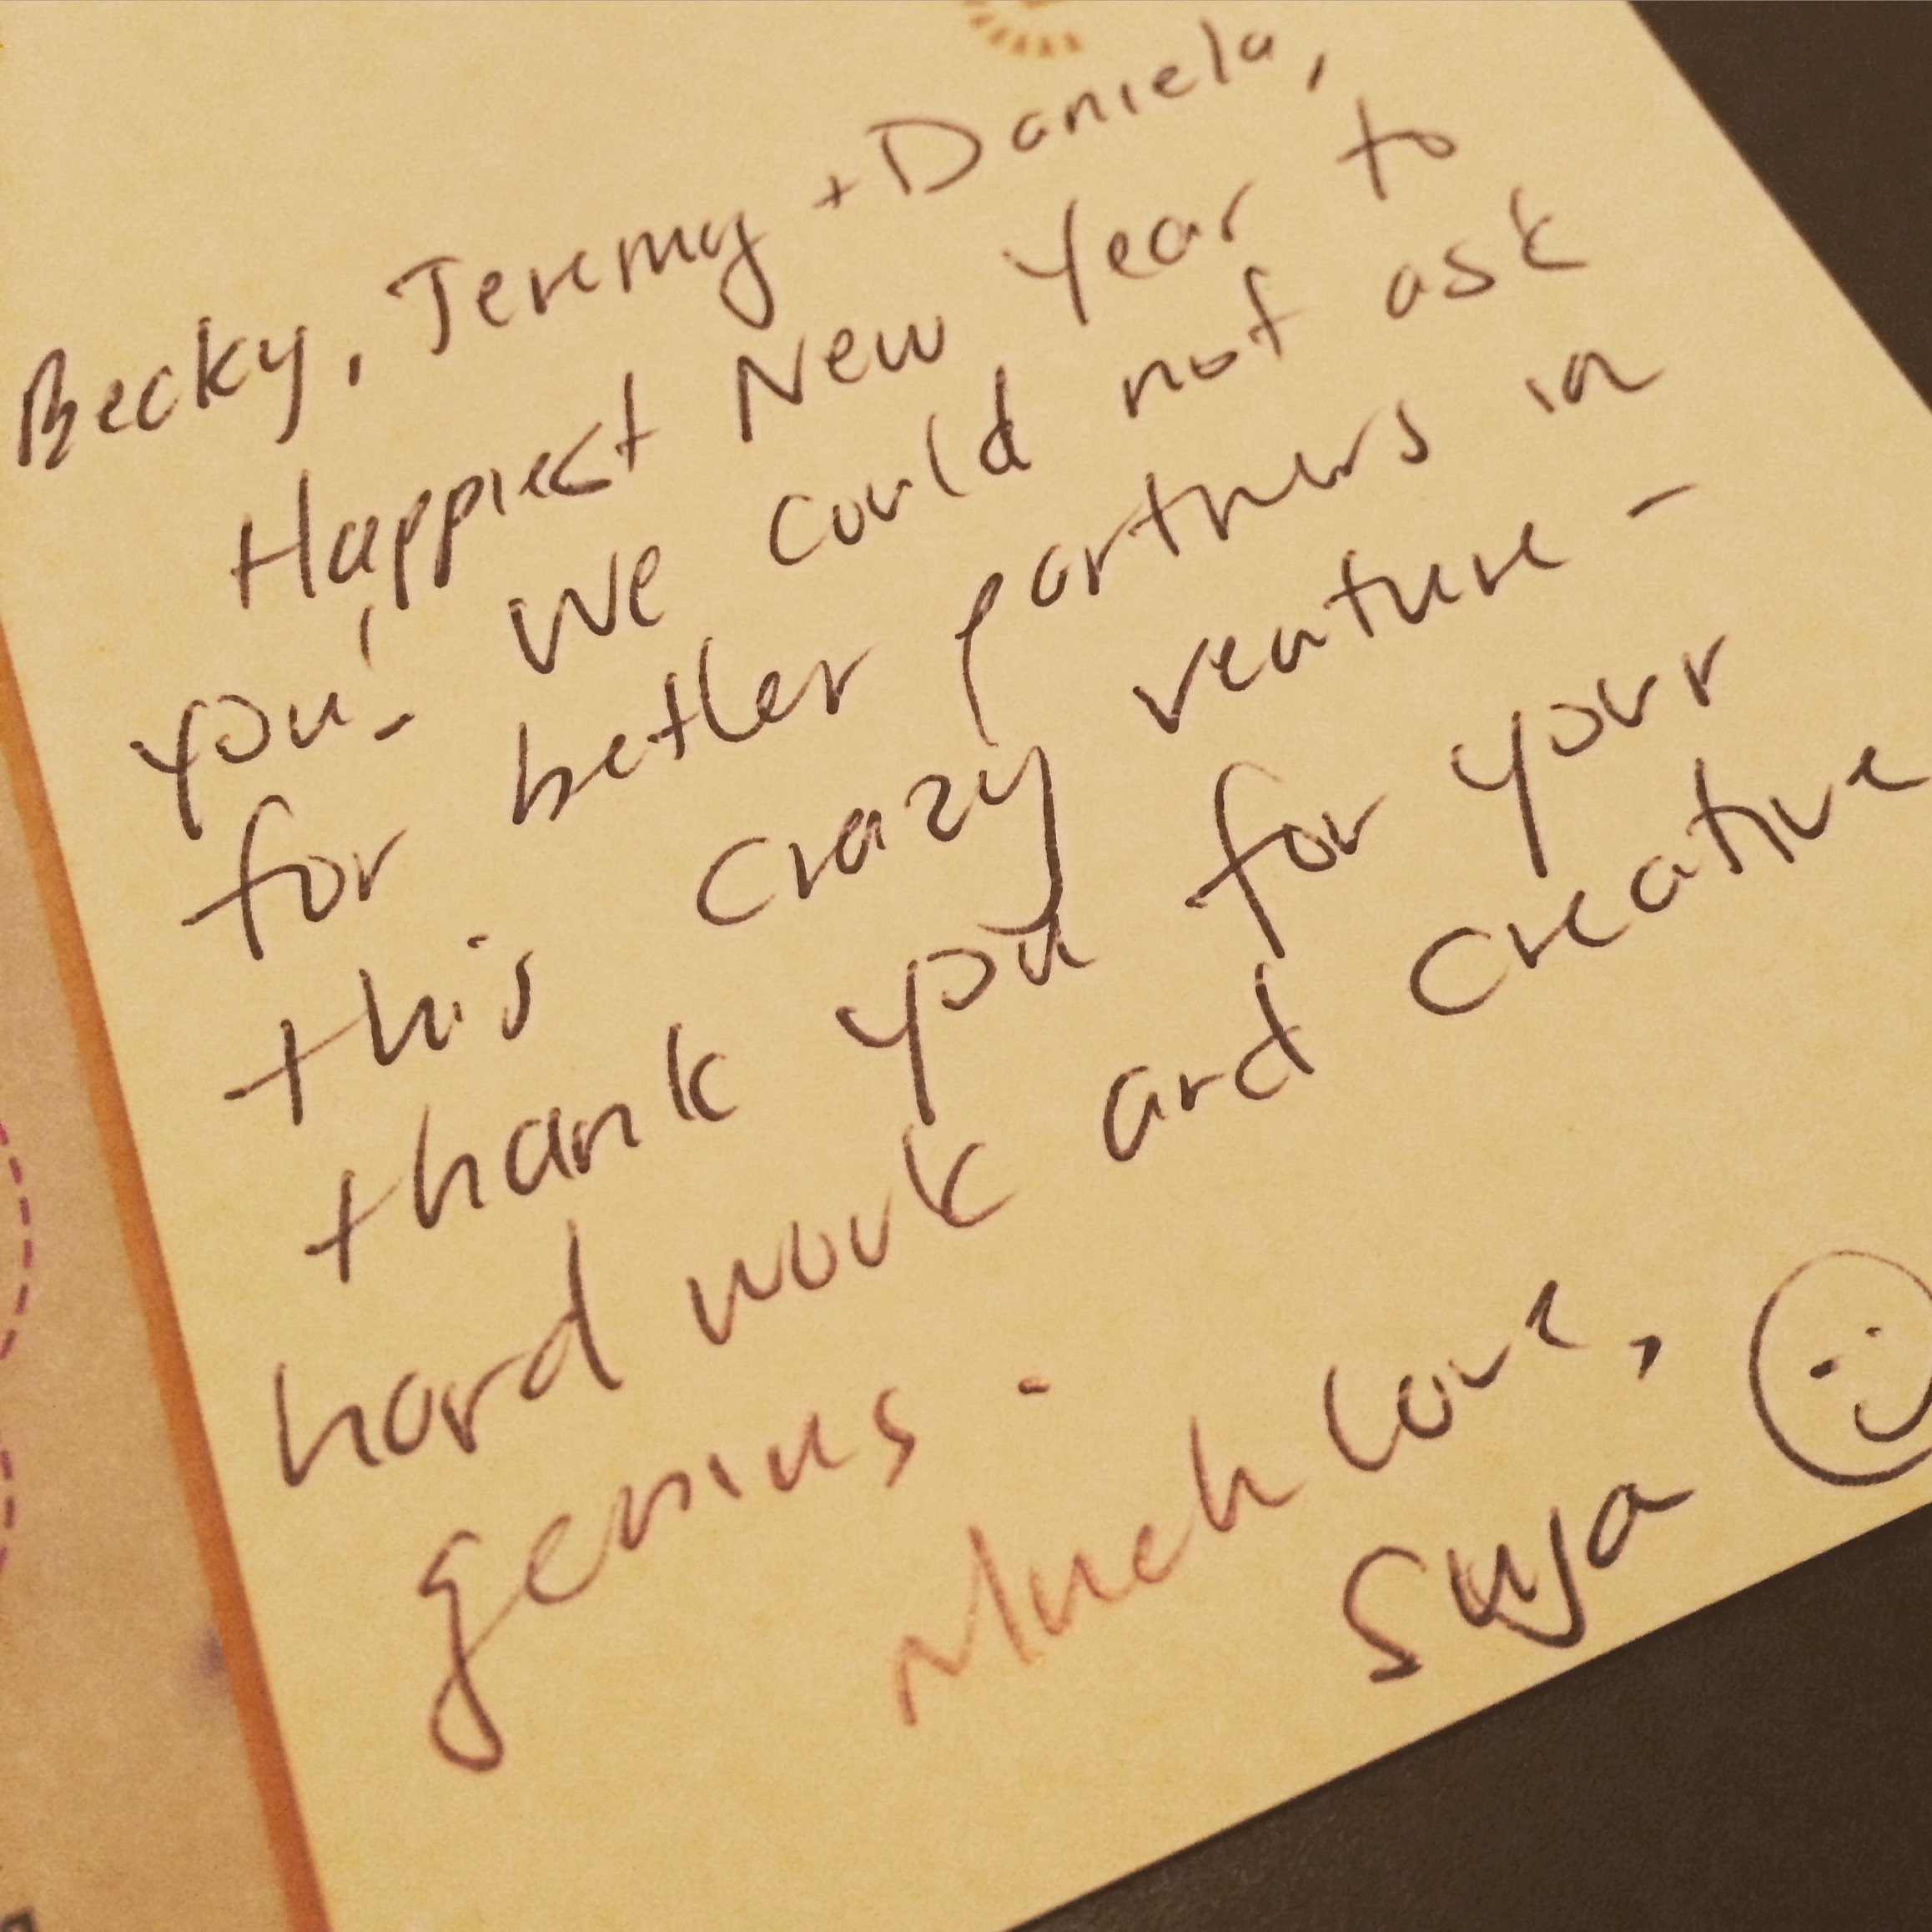 The best gift a client could give. Thank you for the sweet note. We are so lucky!